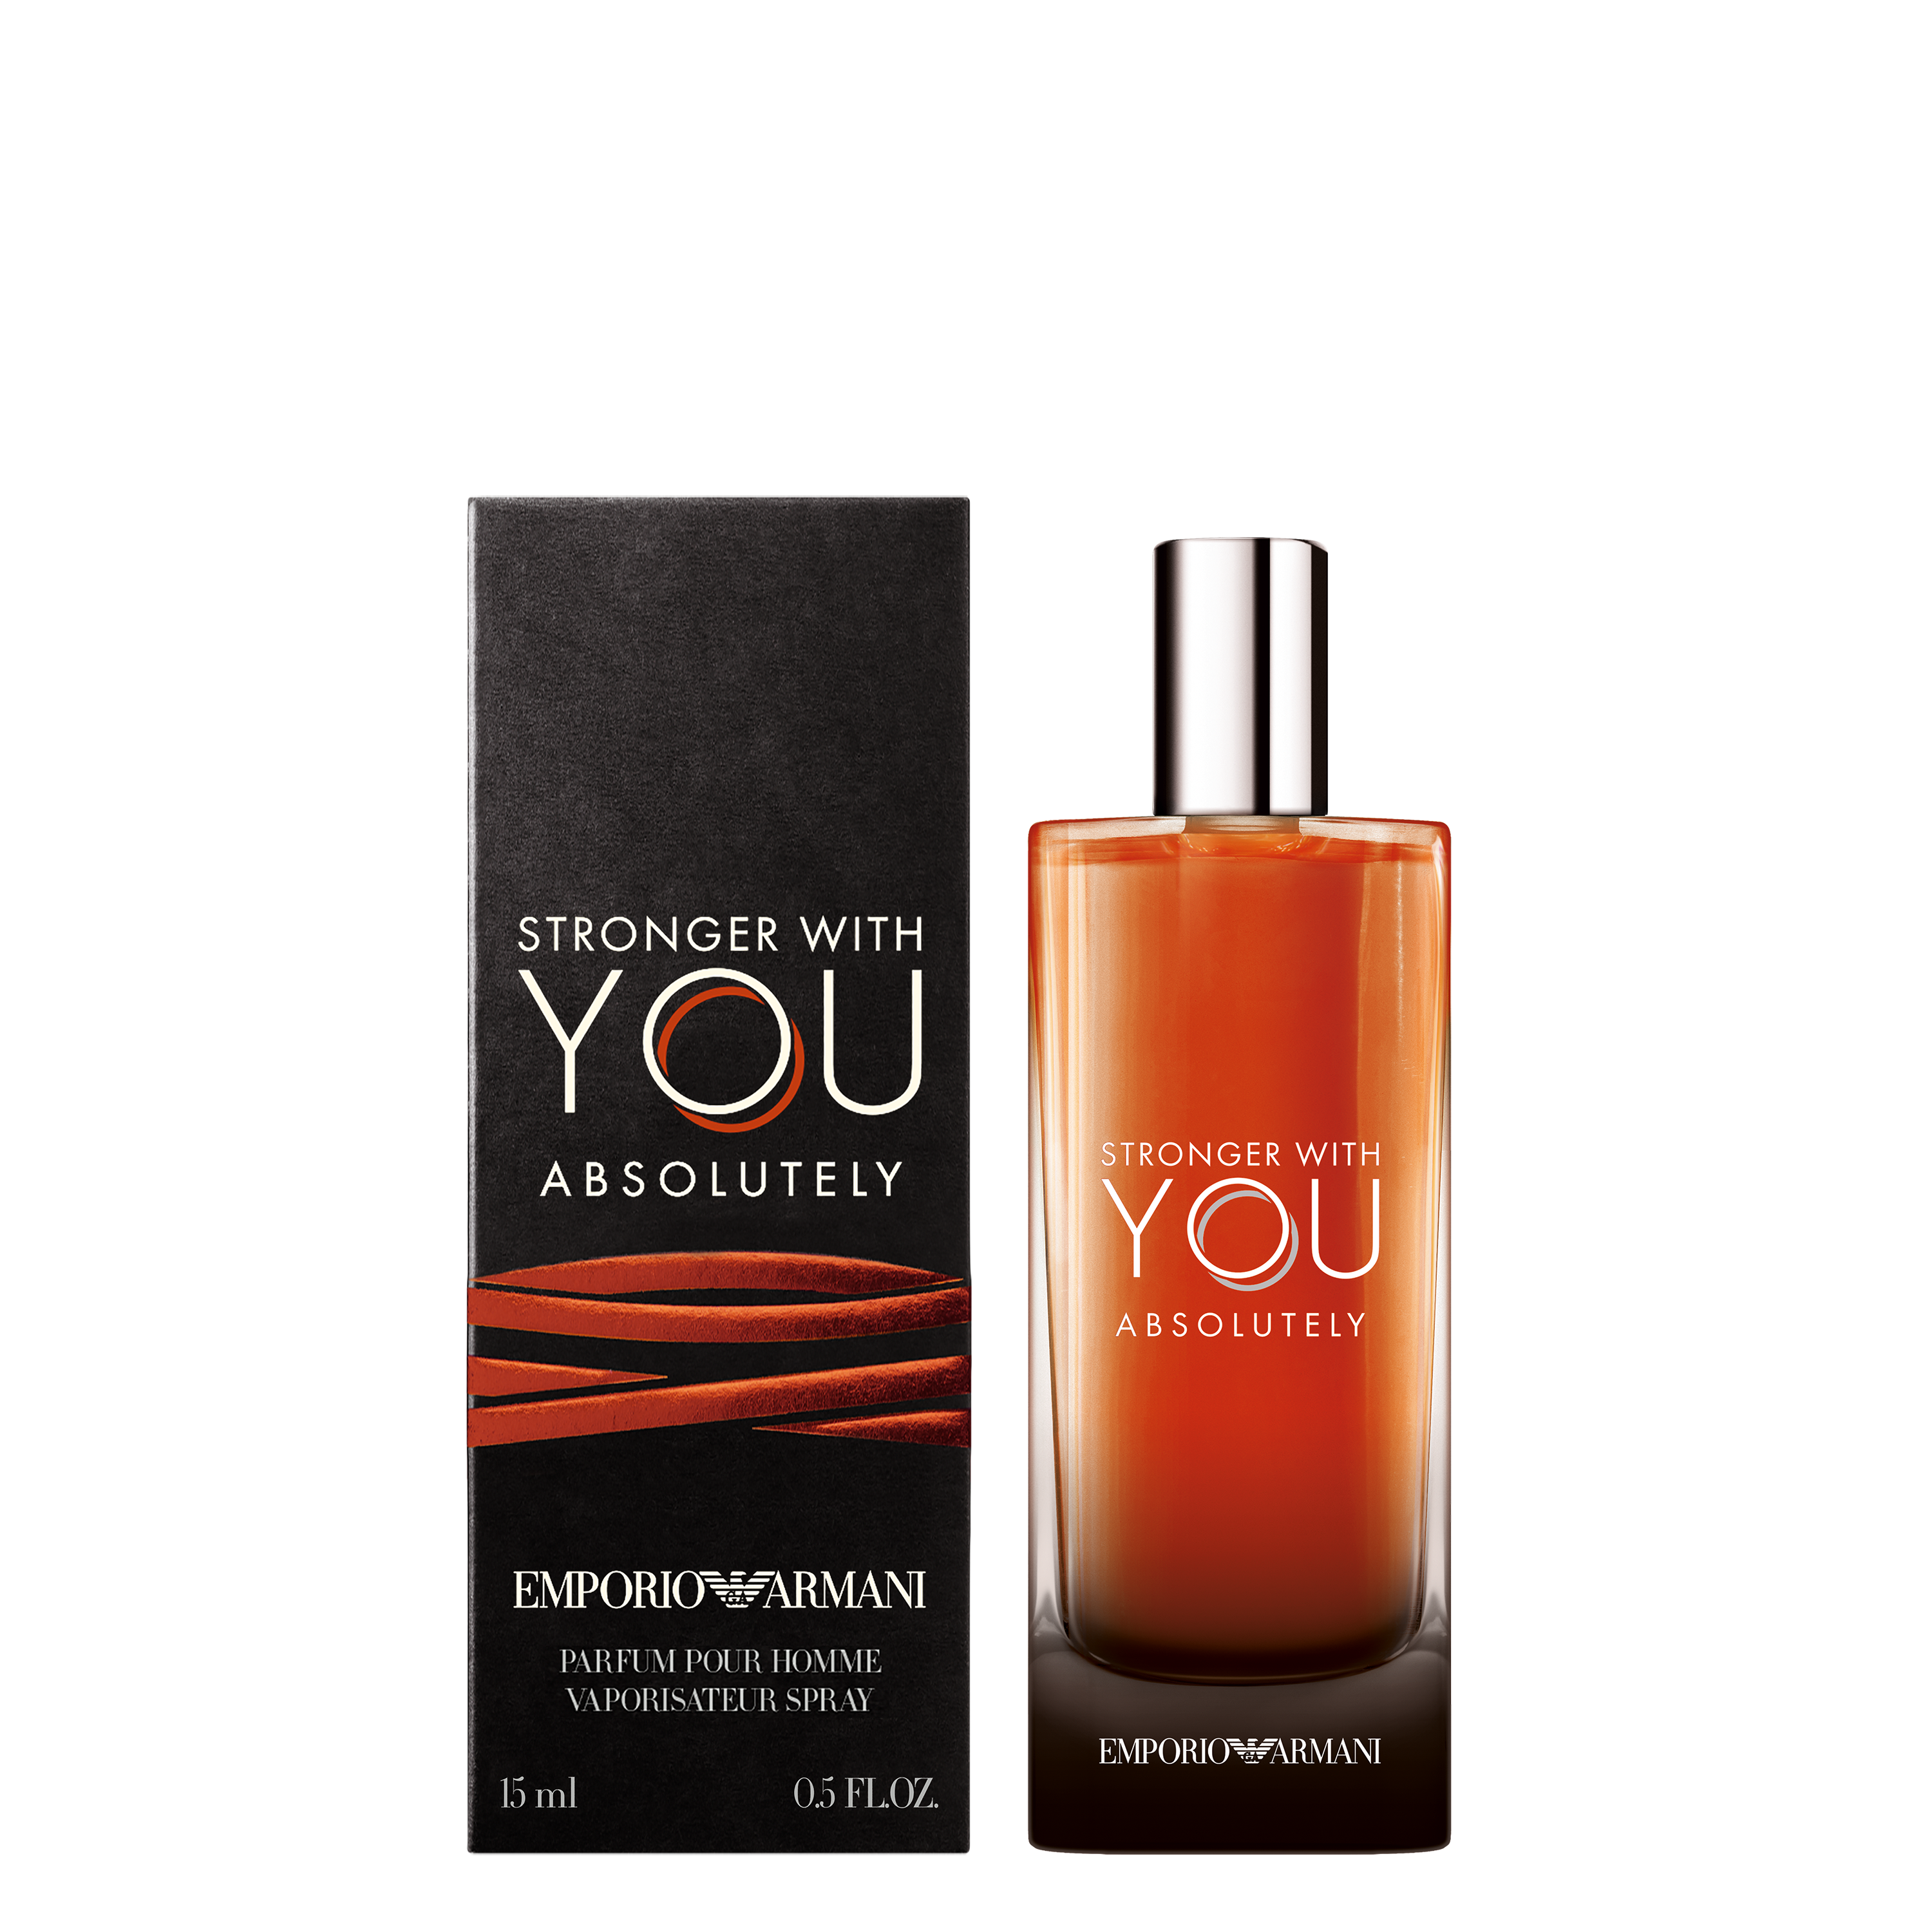 Stronger With You Absolutely (15 ml)